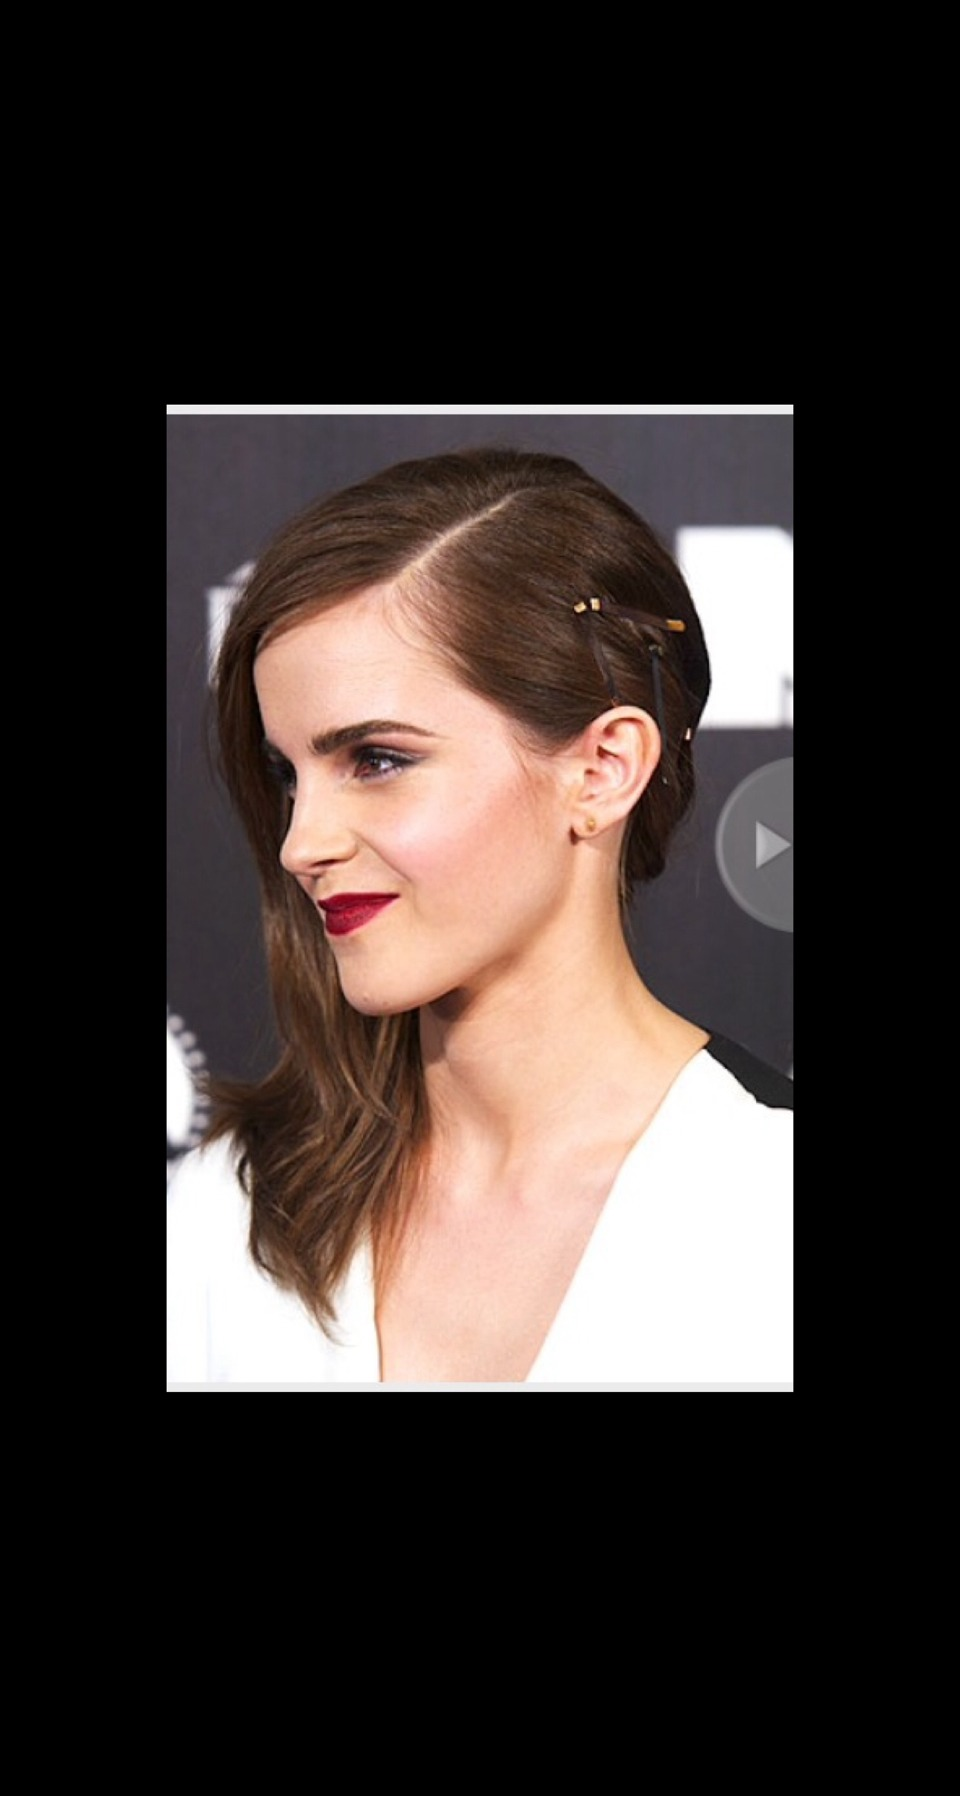 VISIBLE PINS After spending most of our lives mastering the art of hiding bobby pins and clips, Emma Stone and Emma Watson are opening our eyes to a very different, more blatant way of utilizing the hair accessory.